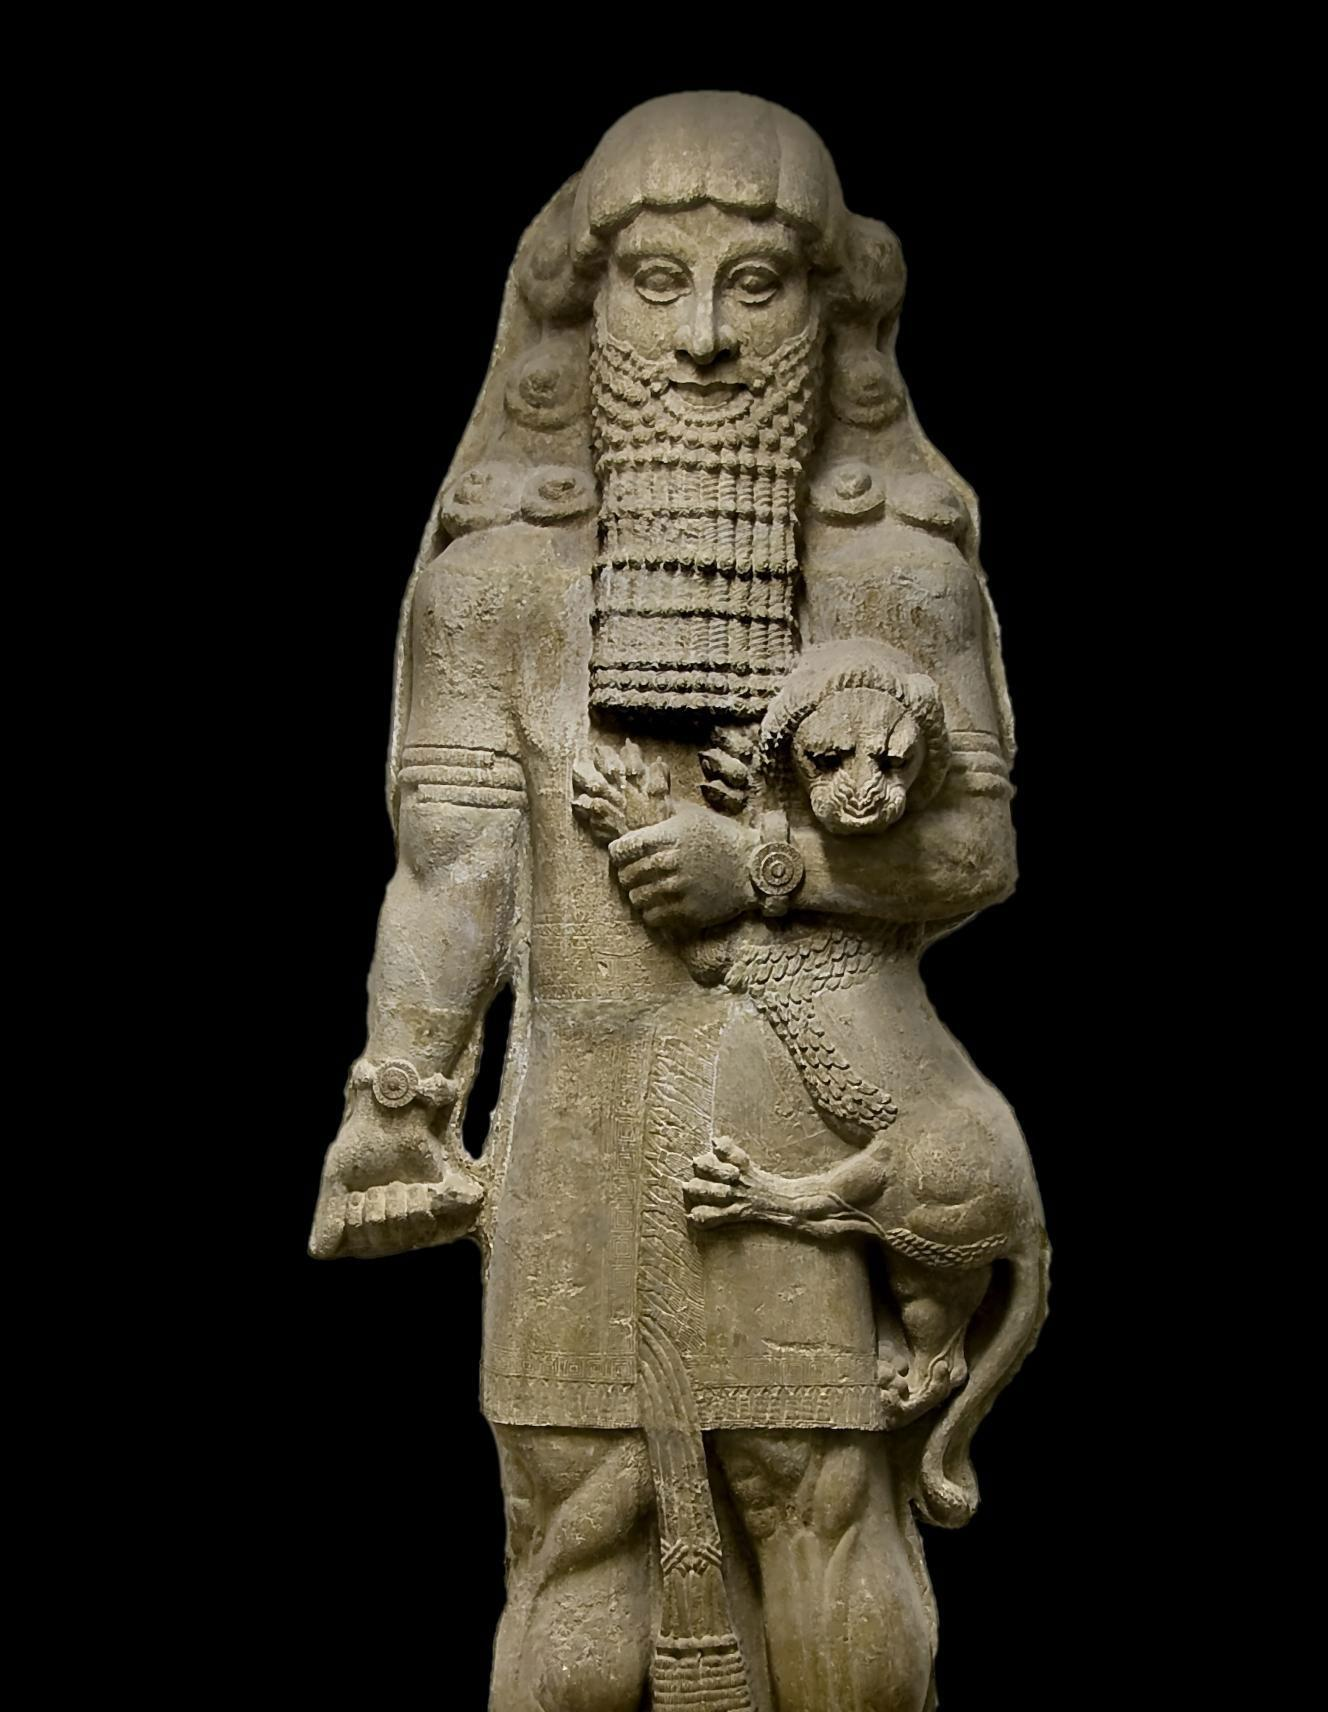 an analysis of the hero gilgamesh in the epic of gilgamesh The summary of epic of gilgamesh it stands out as one of the earliest known writings in the human history whose prose narrate the story revolving.